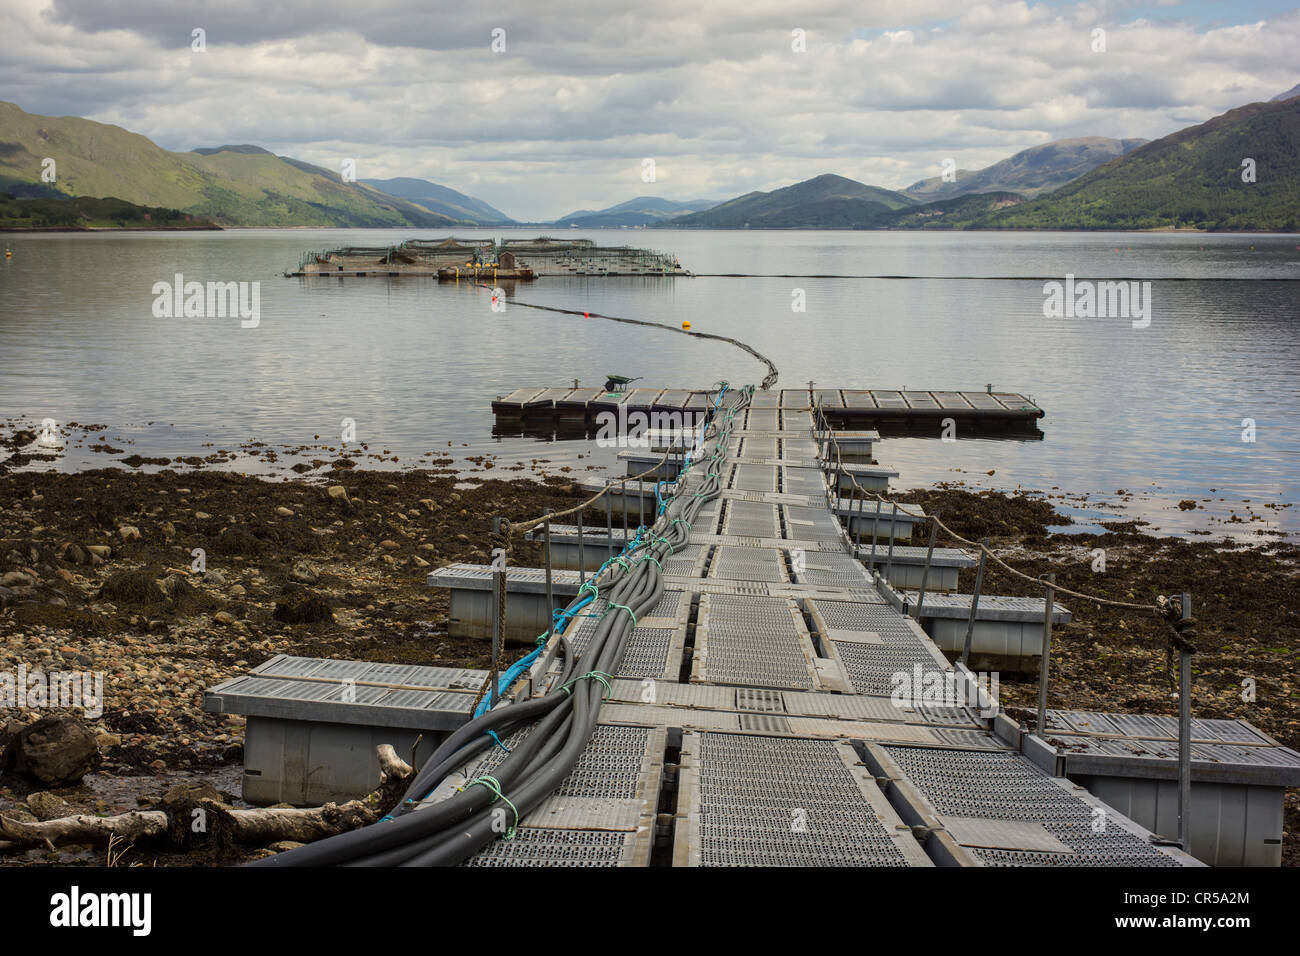 Salmon fishery, Loch Linnhe, near Fort William and Ben Nevis,Scotland - Stock Image